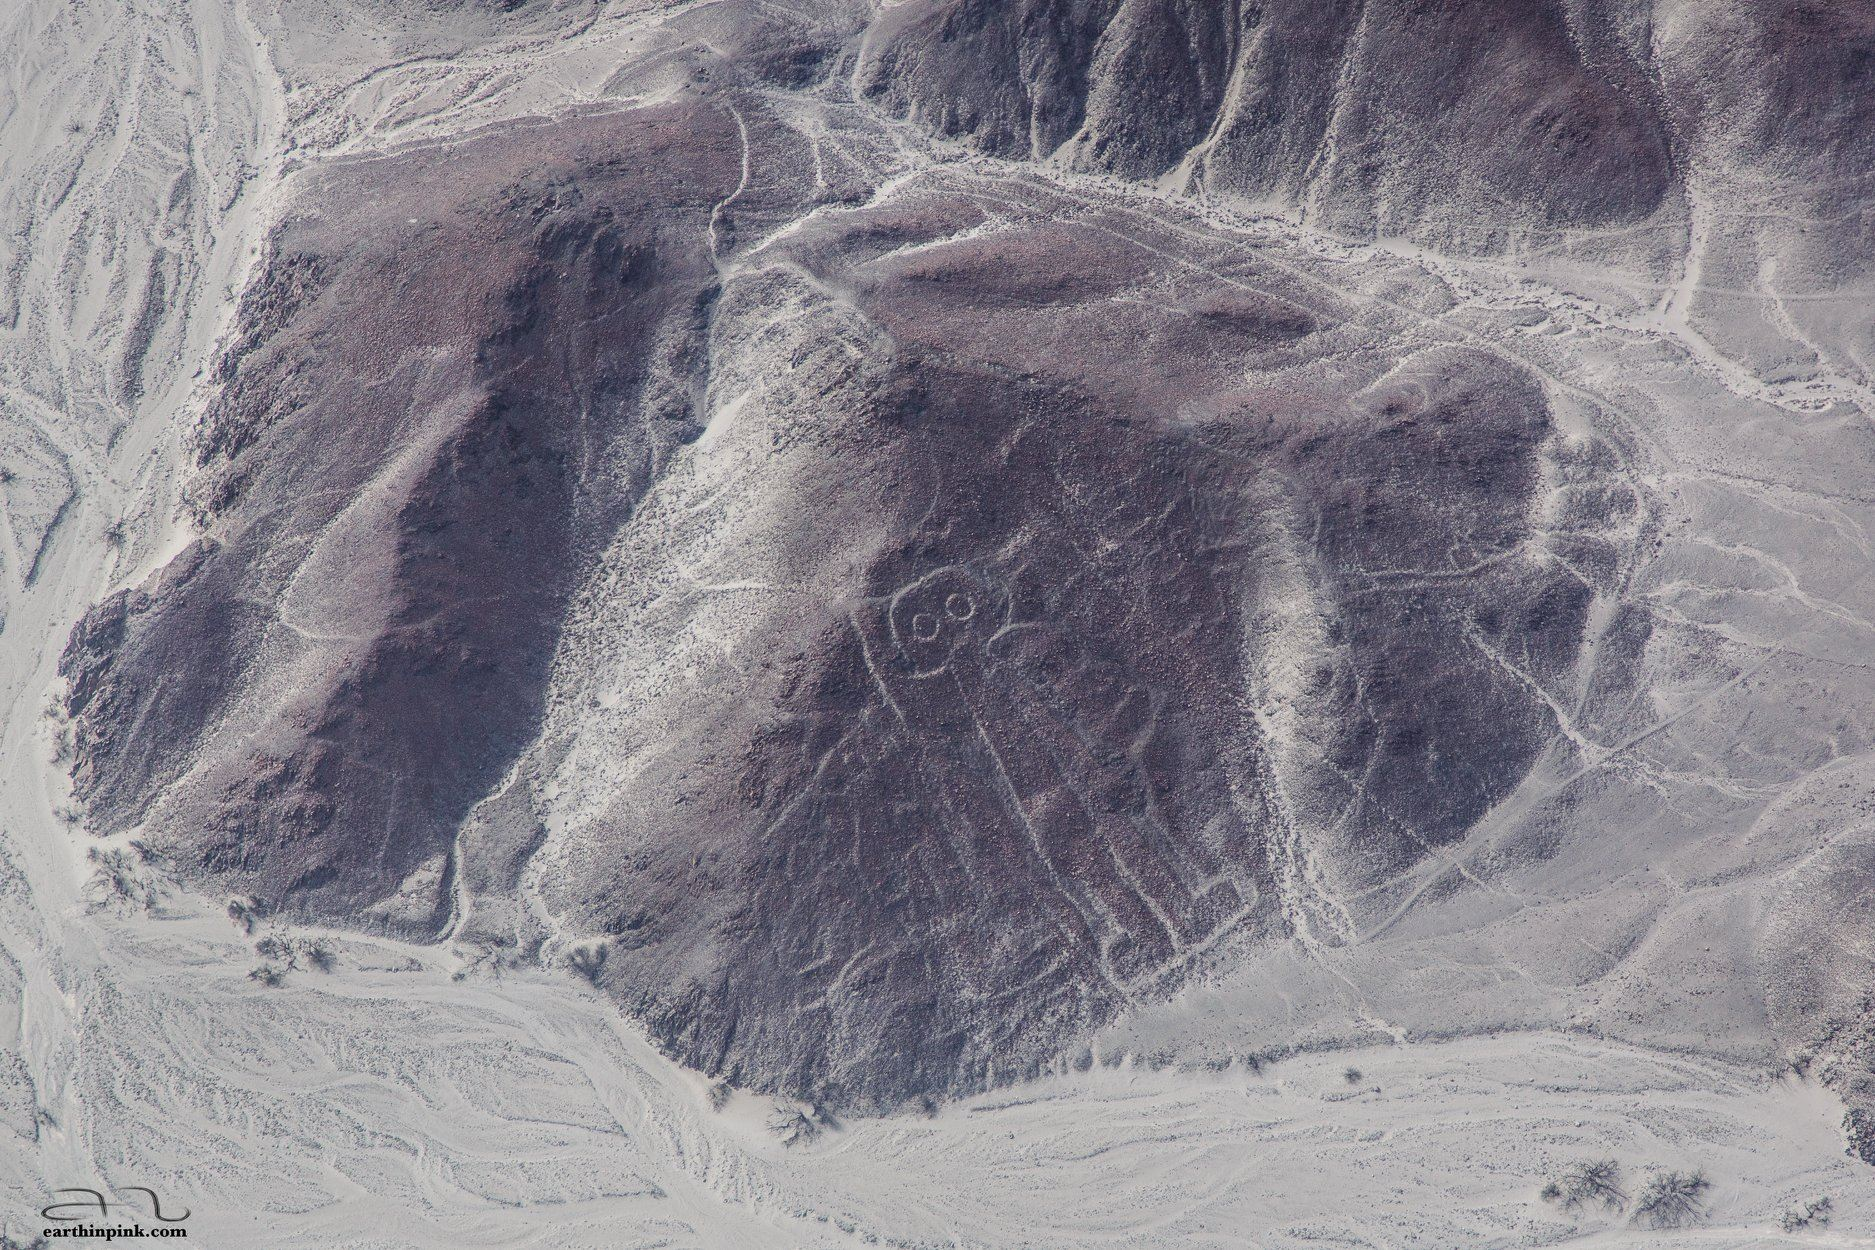 One of the famous Nazca lines drawings, seen from above